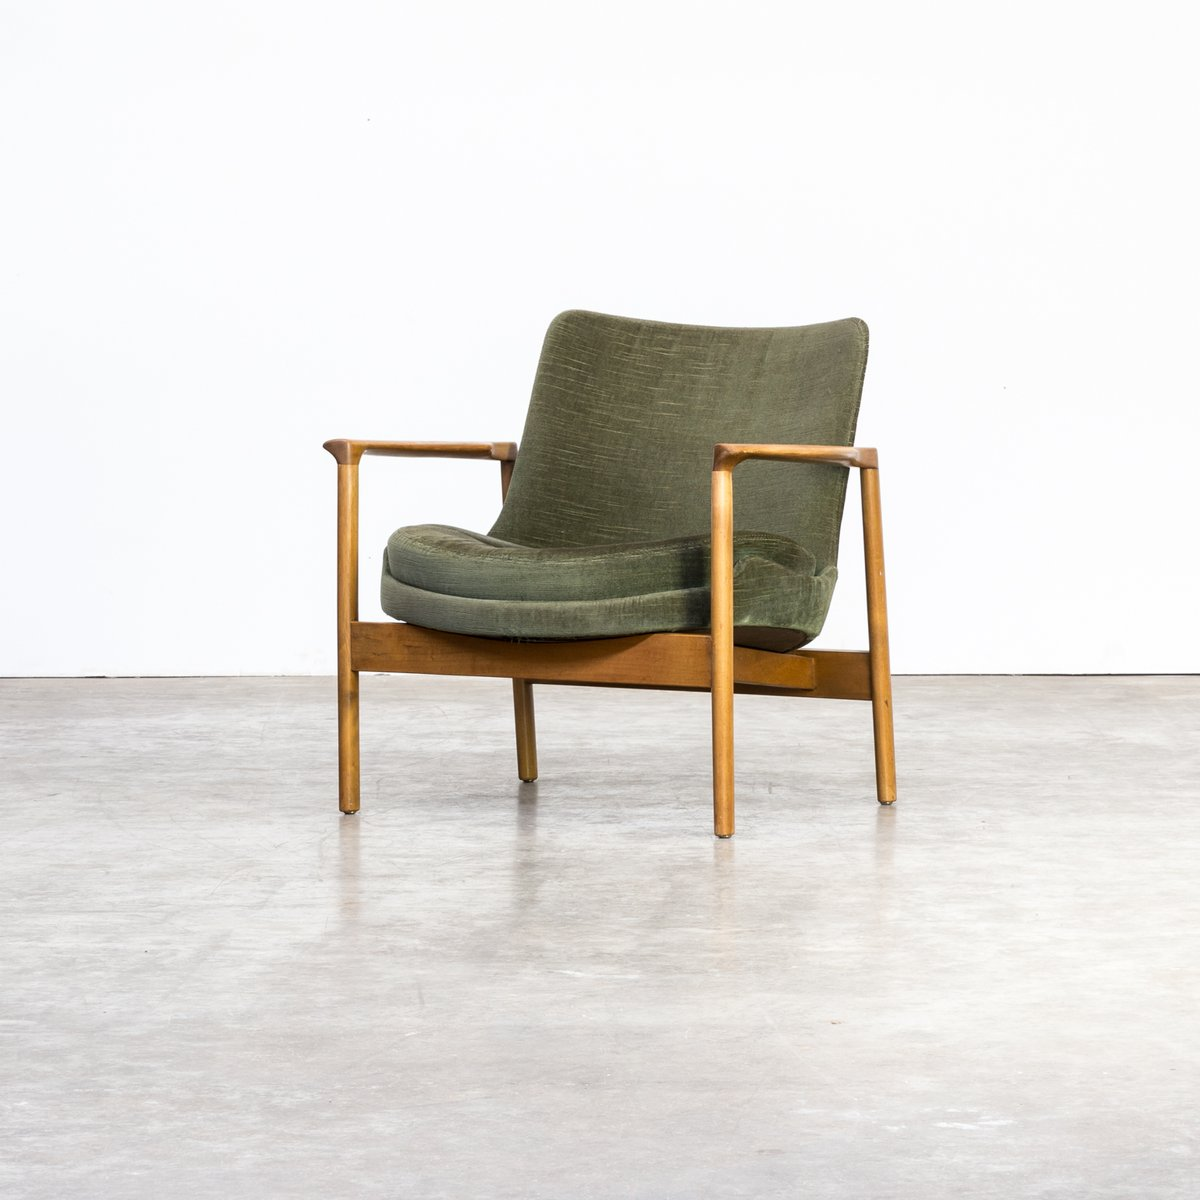 Chaises Elizabeth Elizabeth Lounge Chair By Ib Kofod Larsen For France Søn 1960s